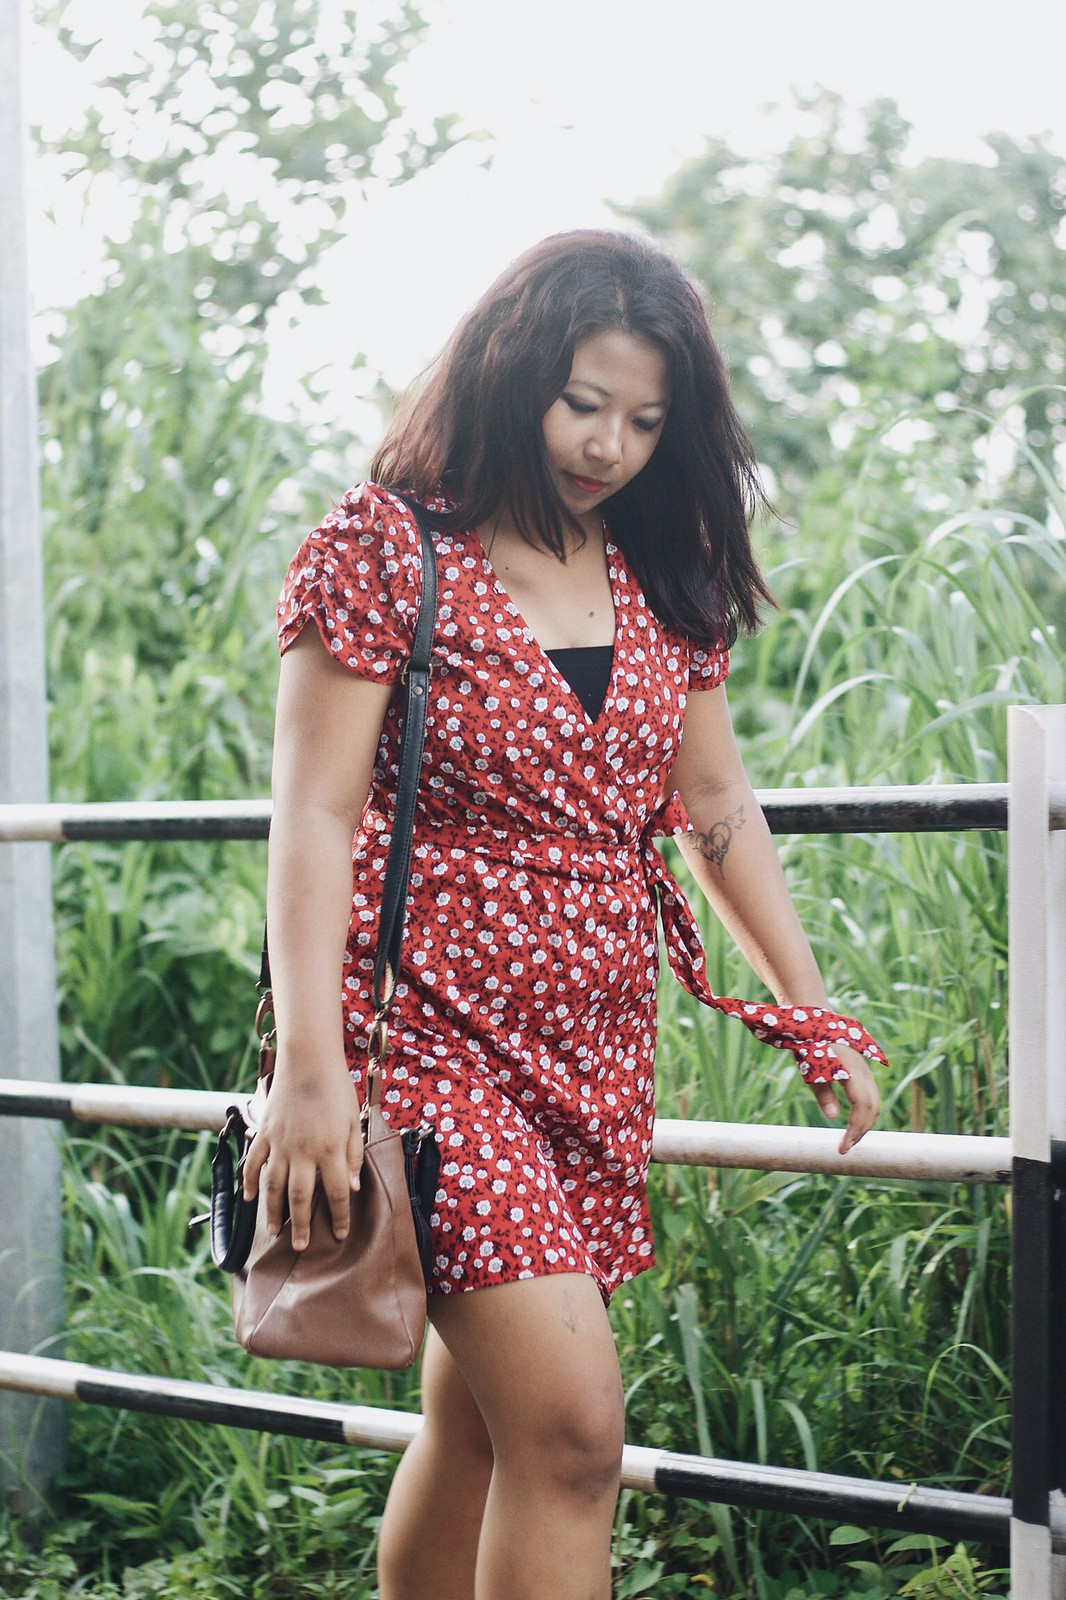 Selestyme by Chayanika Rabha Fashion blogger wearing Floral print dress via Flipkart Summer Fashion